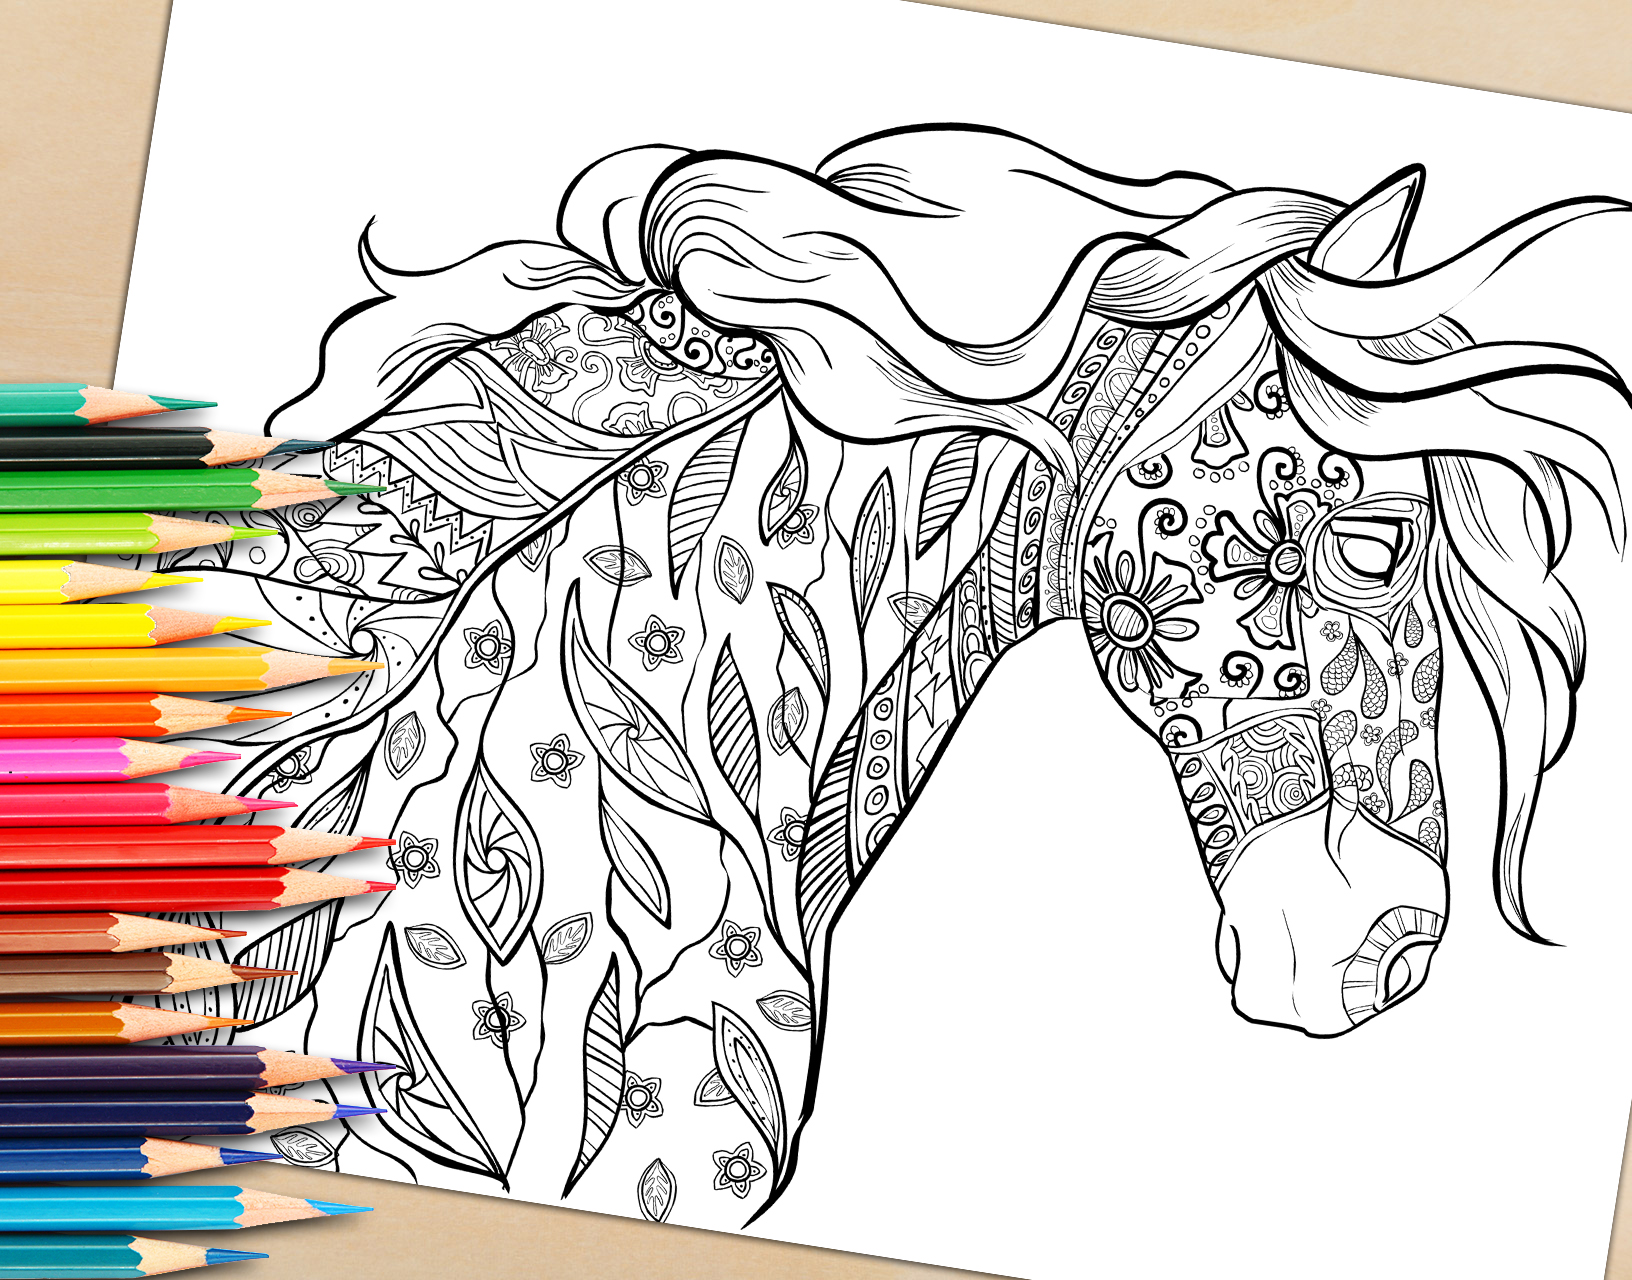 coloring book page decorative horse coloring page for